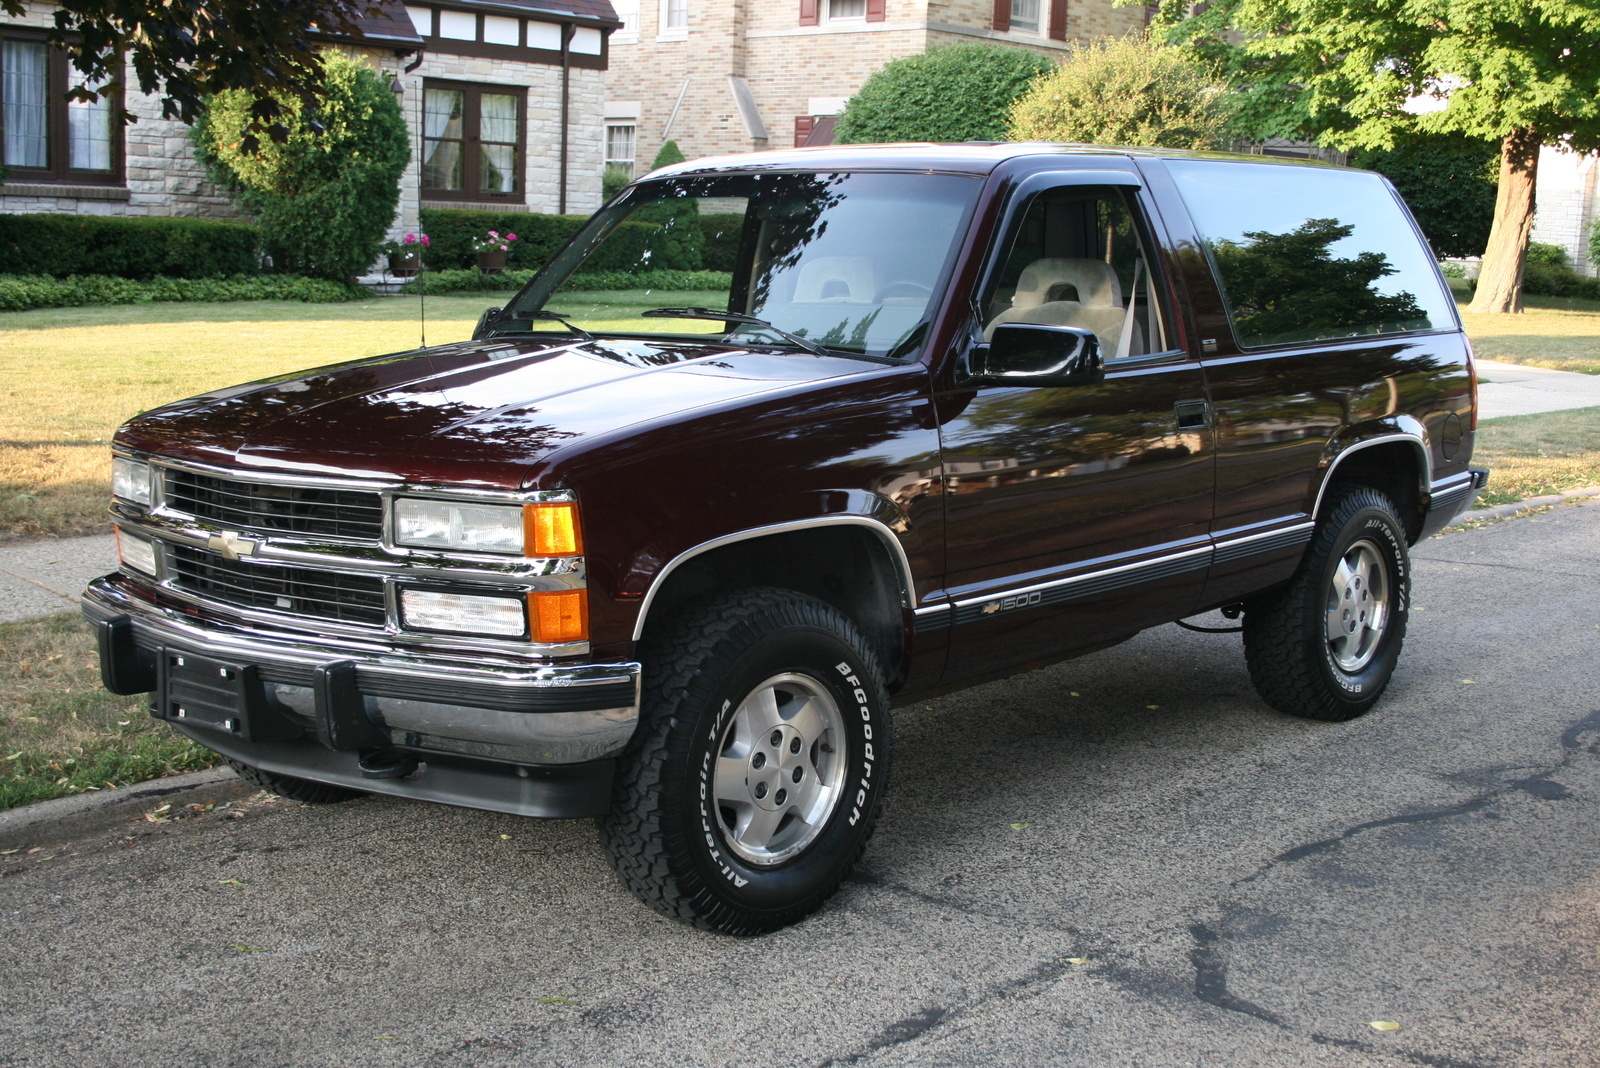 1994 Chevrolet Suburban Overview Cargurus 1968 Chevy 4x4 Cars Compared To